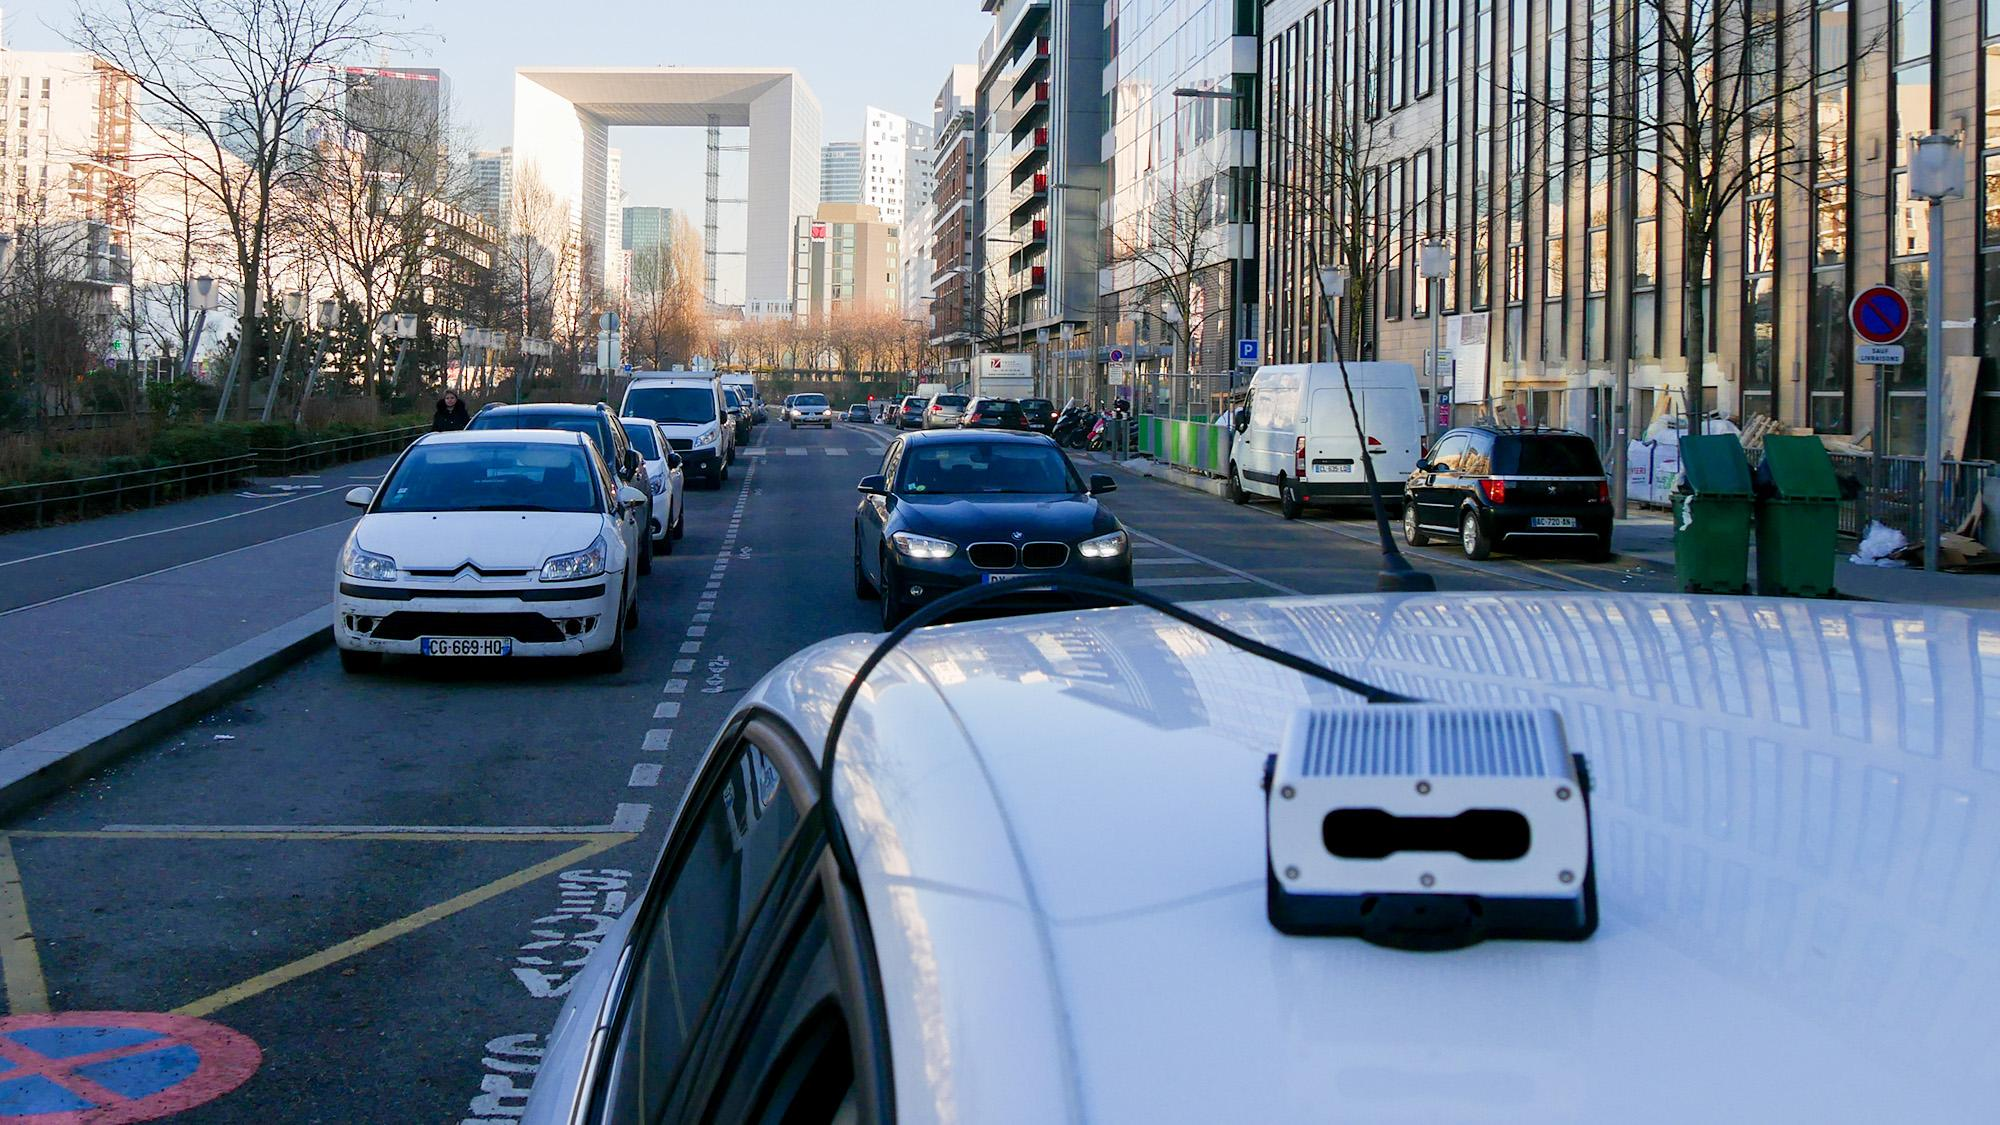 License Plate Recognition applications on Street Security solutions,  explained at Survisiongroup.com